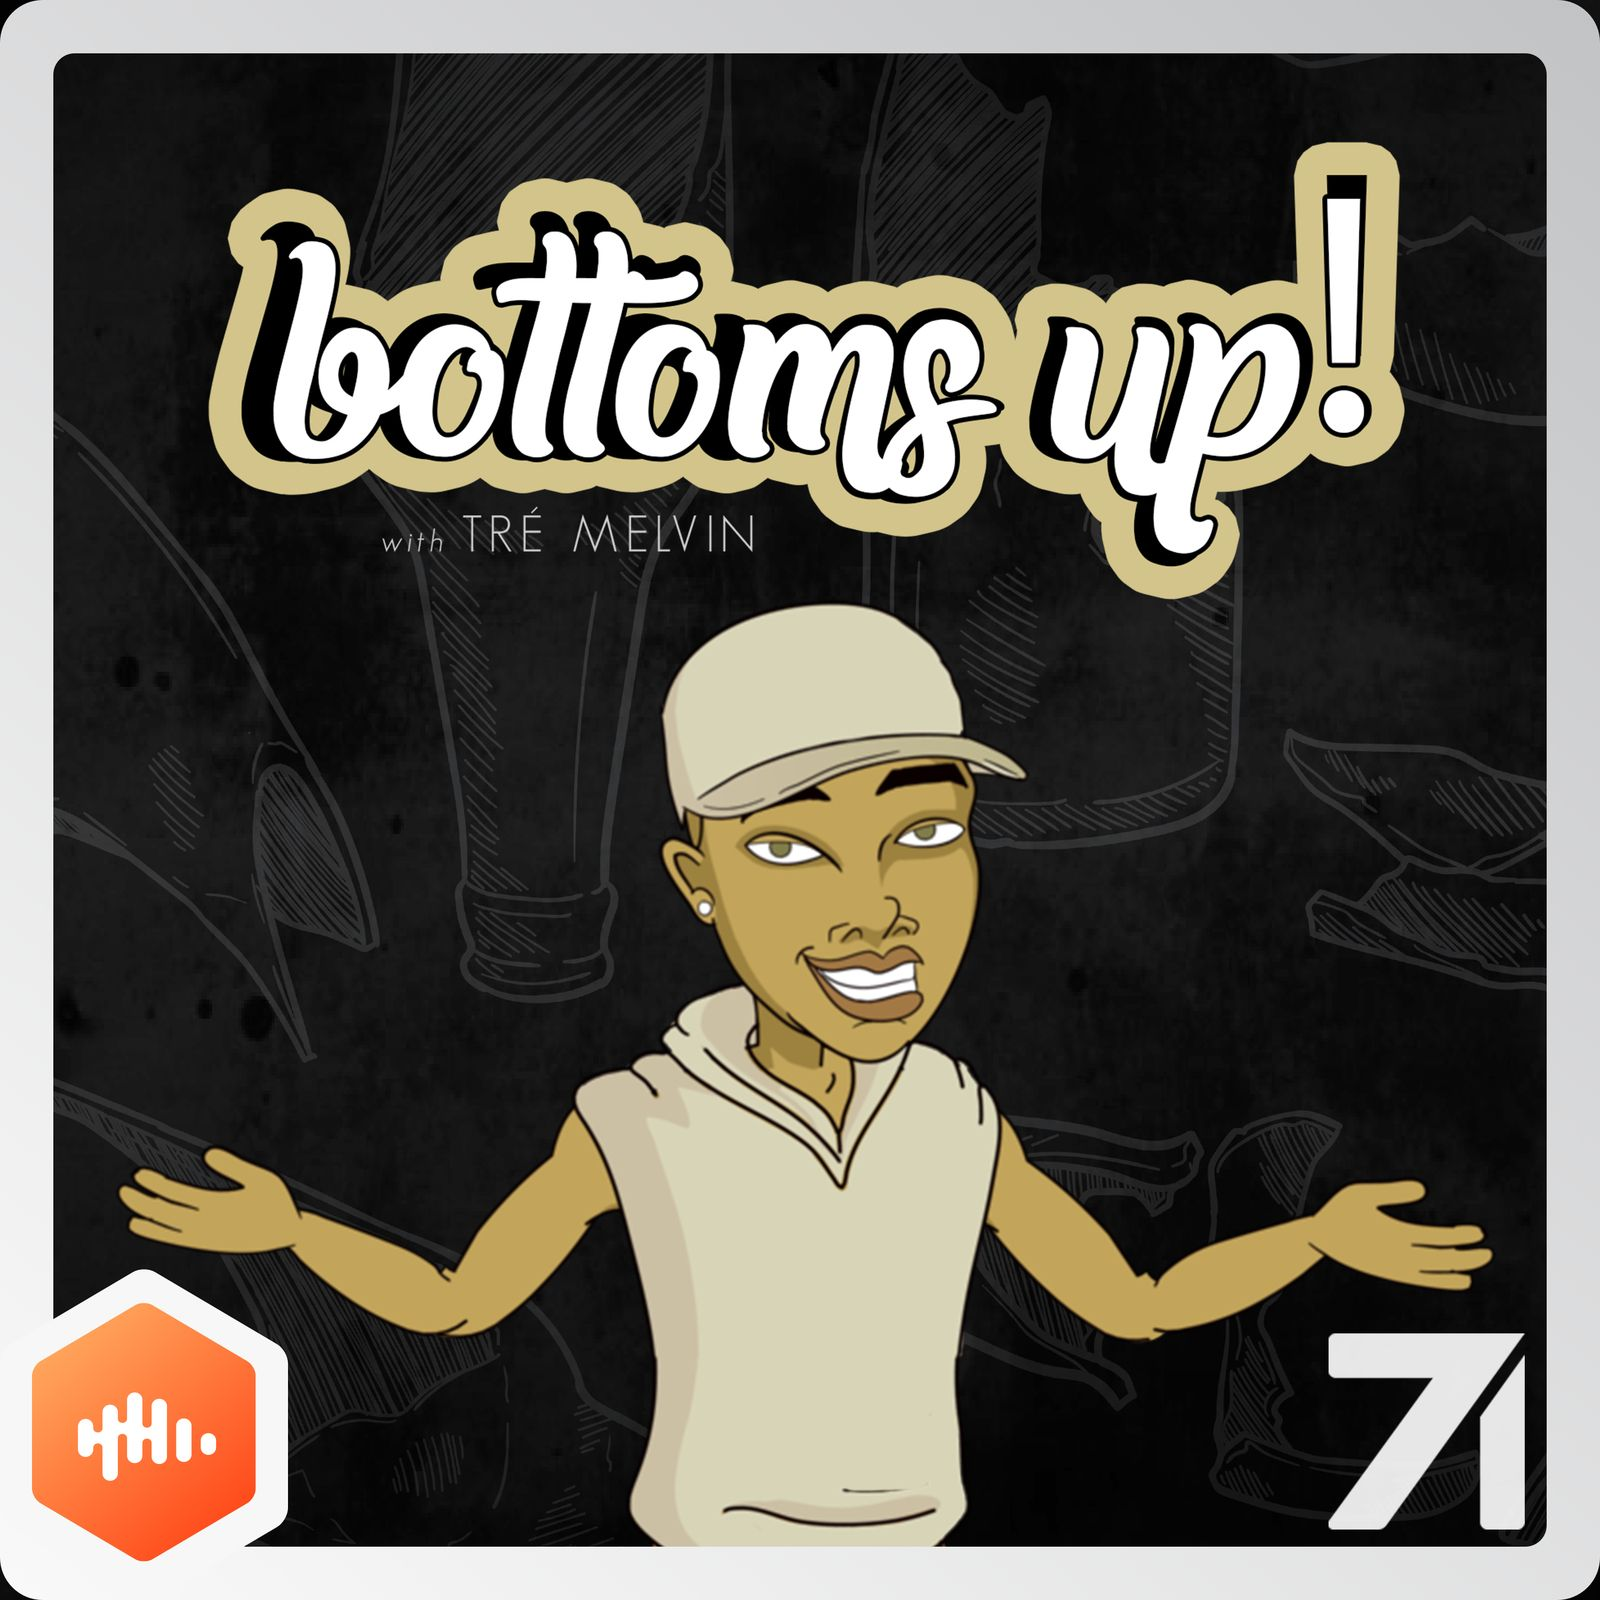 5: Sparkling Plan B (feat. Diamond White) - Bottoms Up! with Tré Melvin